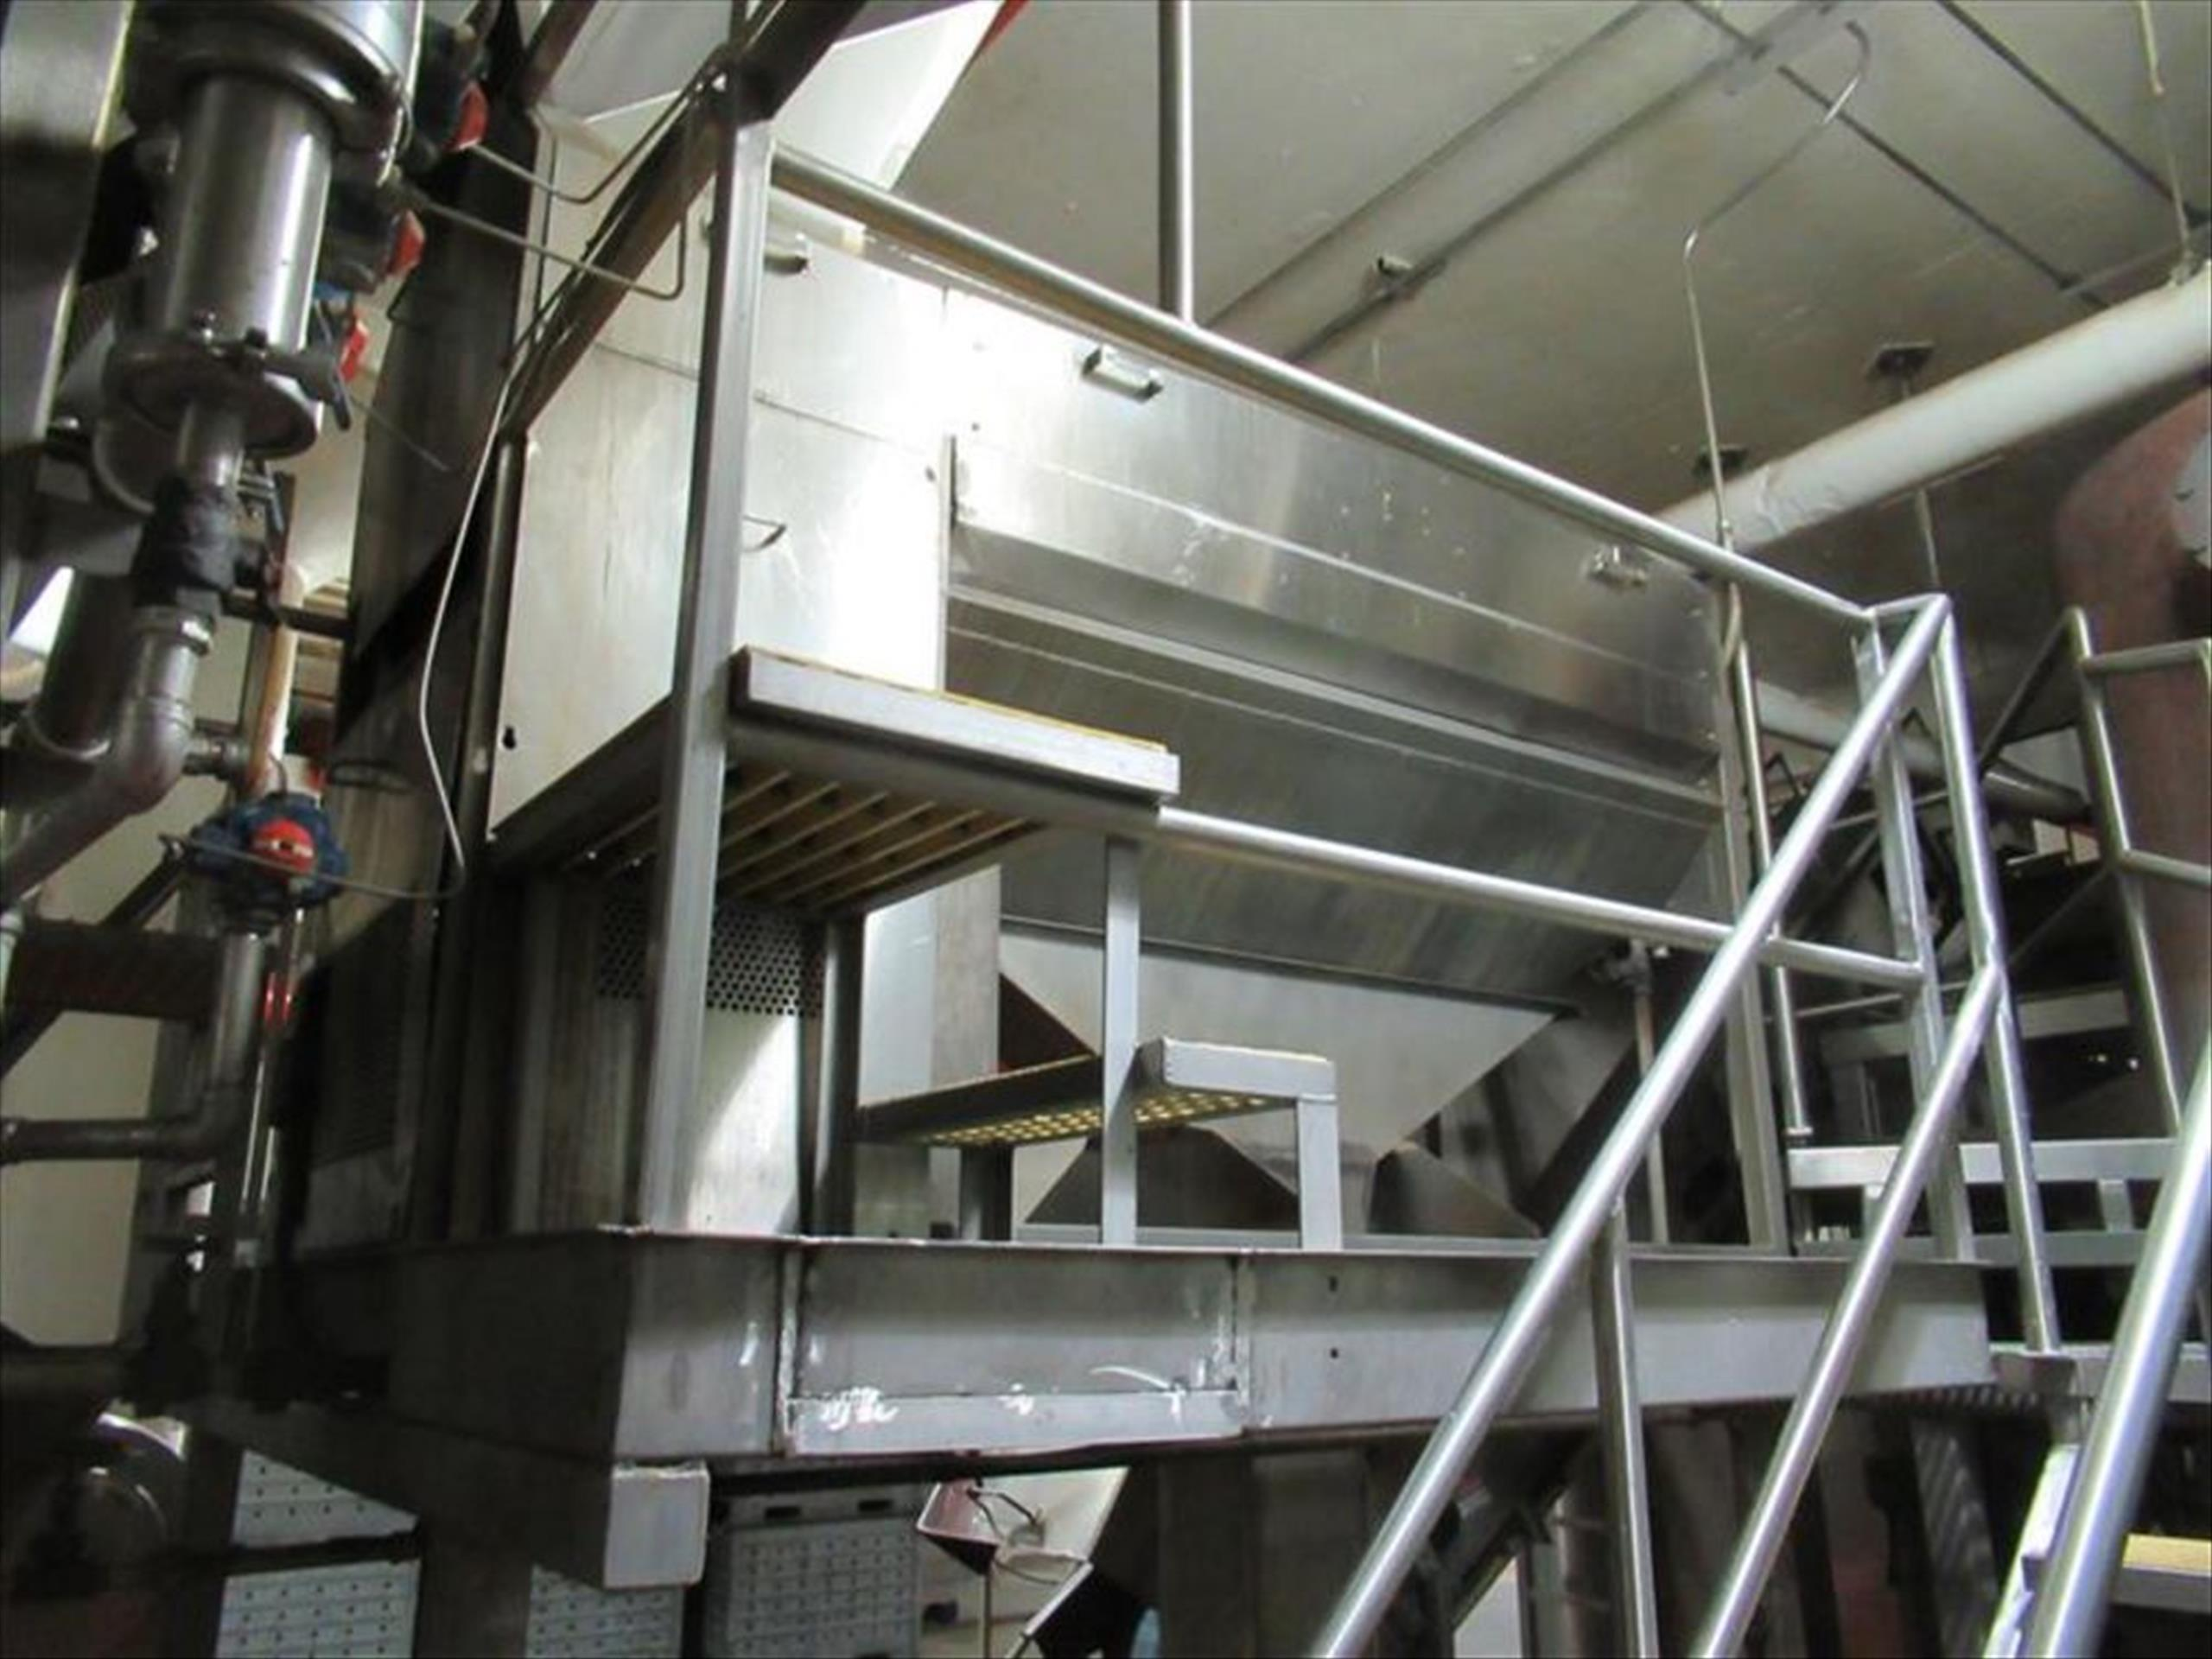 Brush washer with screw continuous washing / scrubbing machine, 6 brush rollers, spray bar, approx